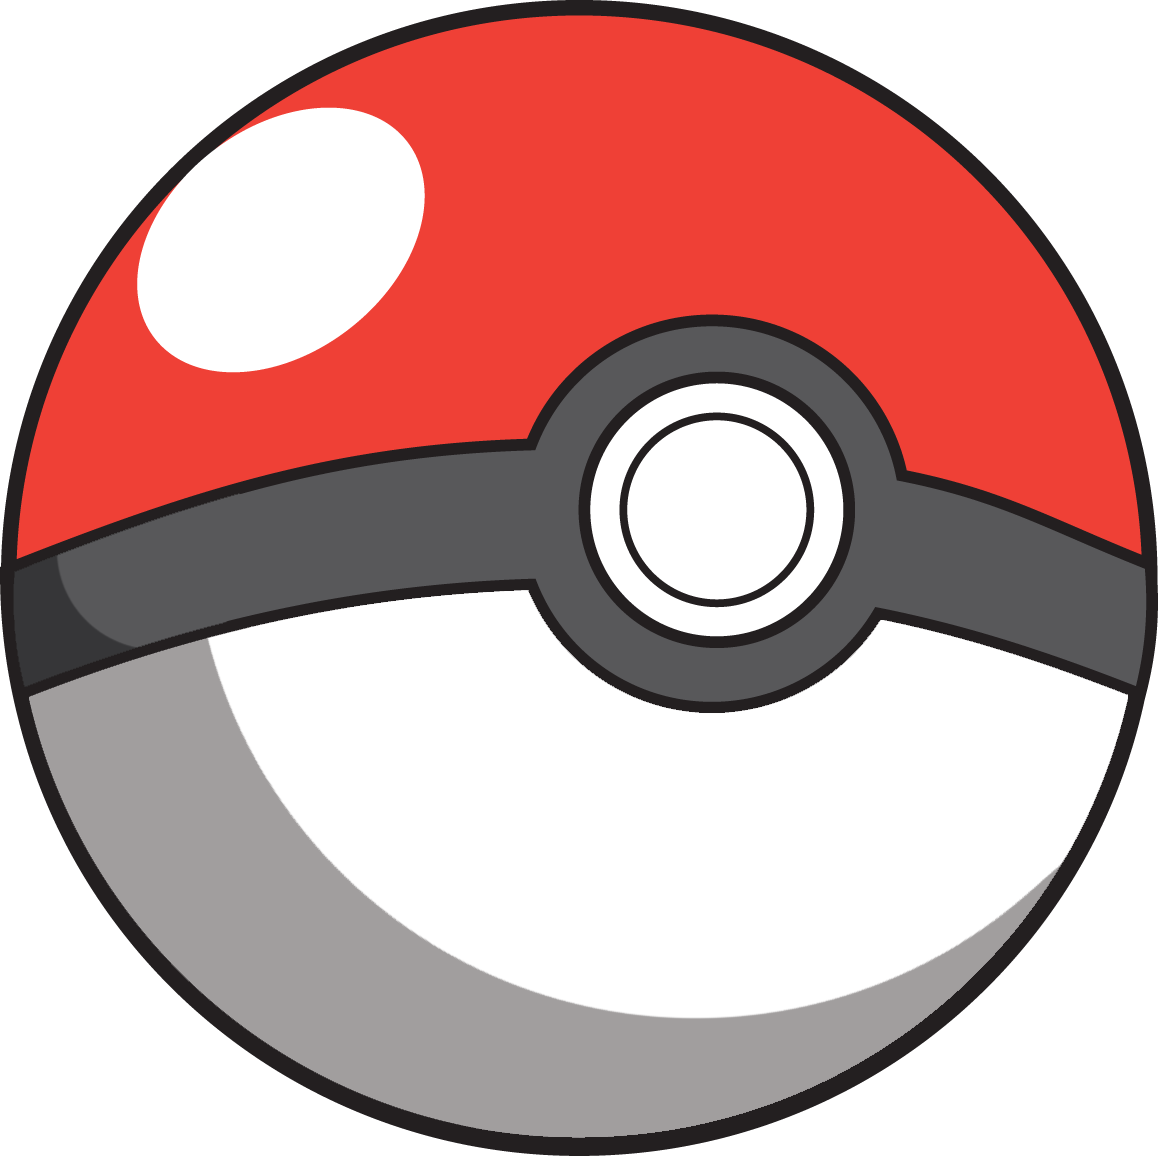 pokeball open png